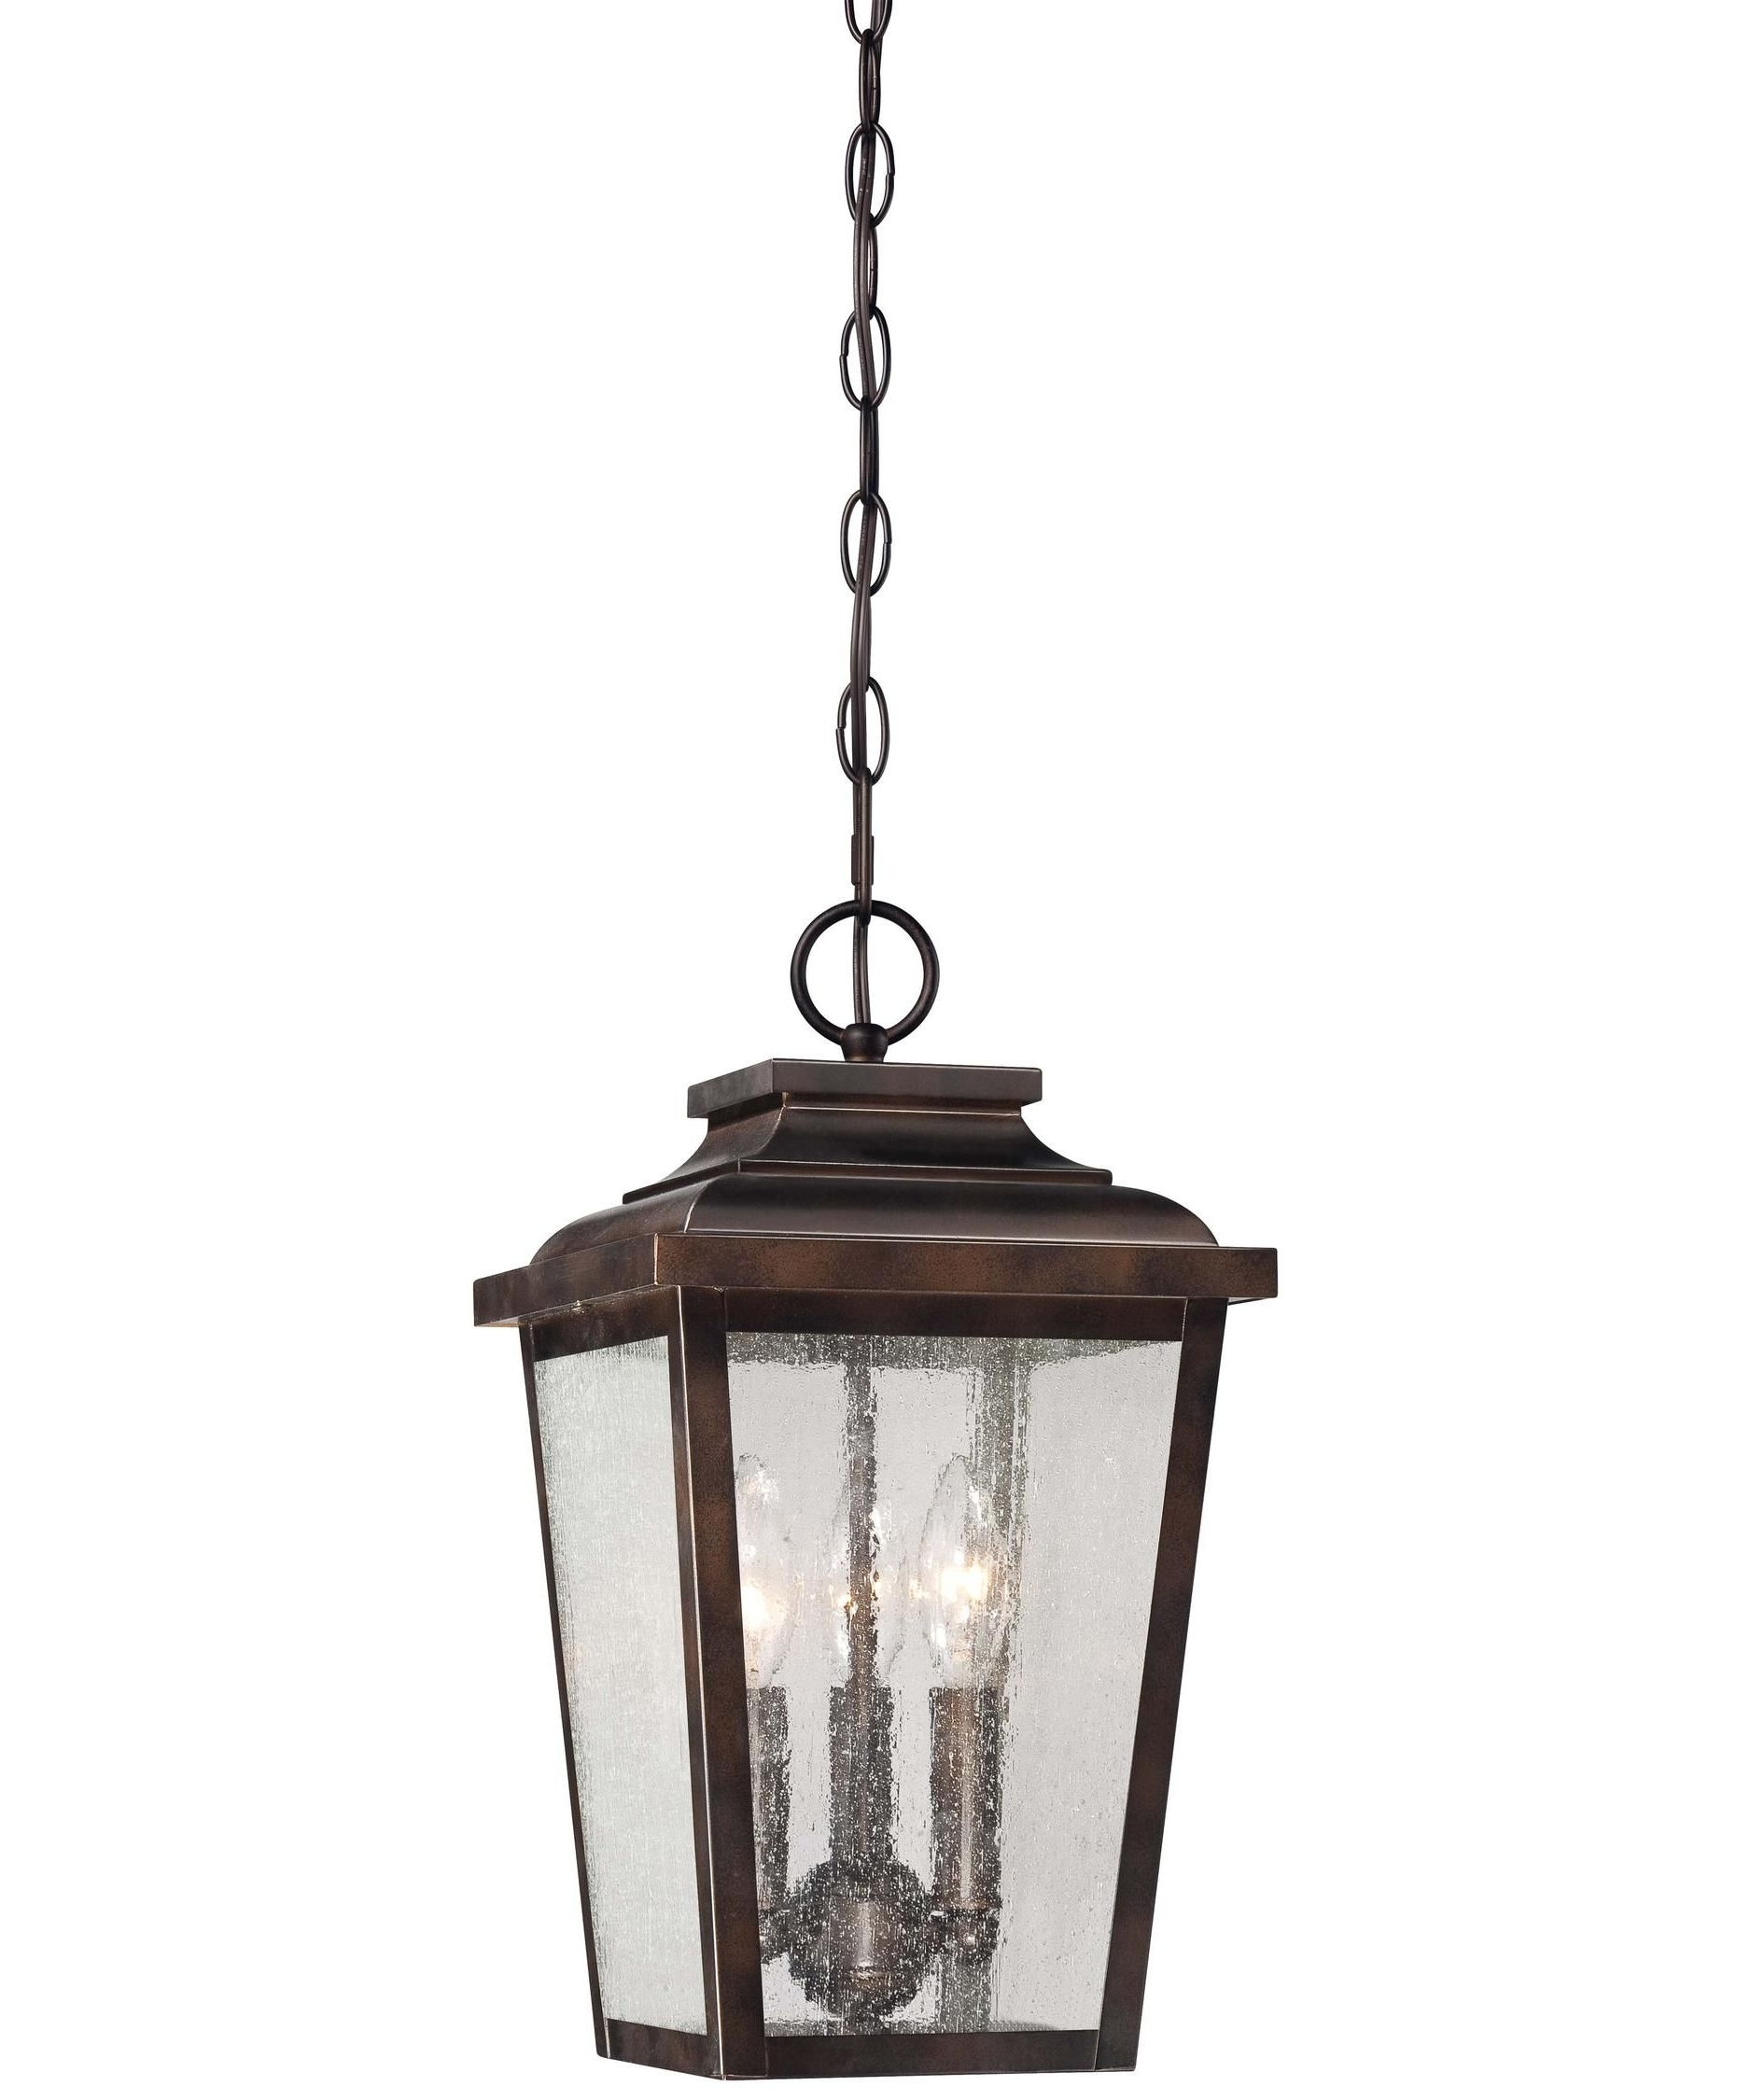 Minka Lavery 72174 Irvington Manor 3 Light Outdoor Hanging Lantern Intended For Most Popular Outdoor Hanging Lights For Porch (View 10 of 20)